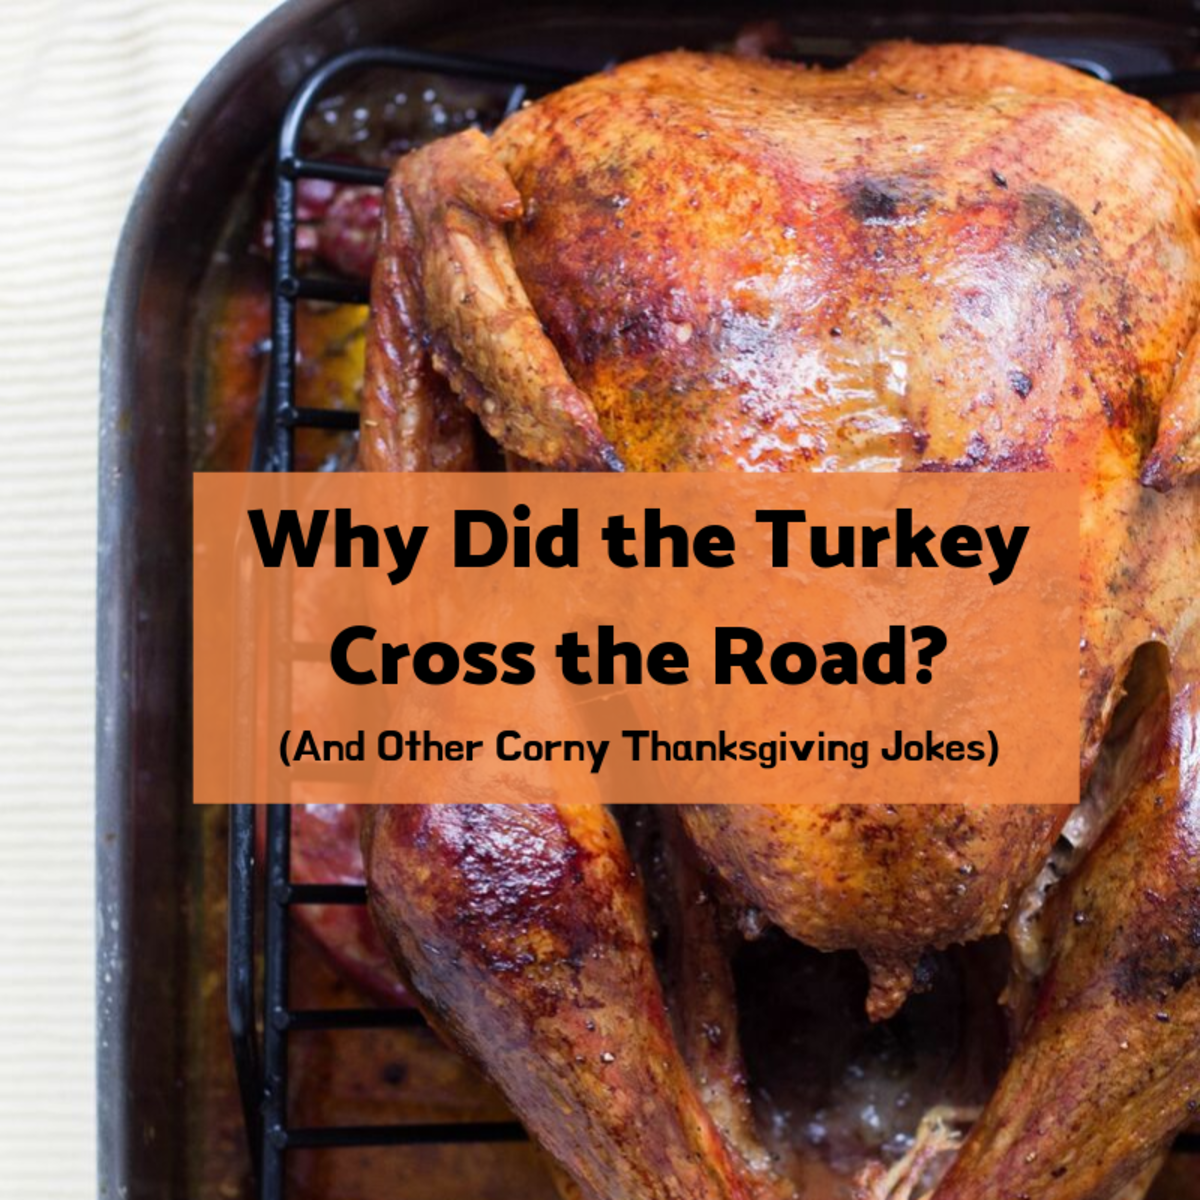 Corny jokes are a hallmark of any great thanksgiving. Here are a few to get you started. . .